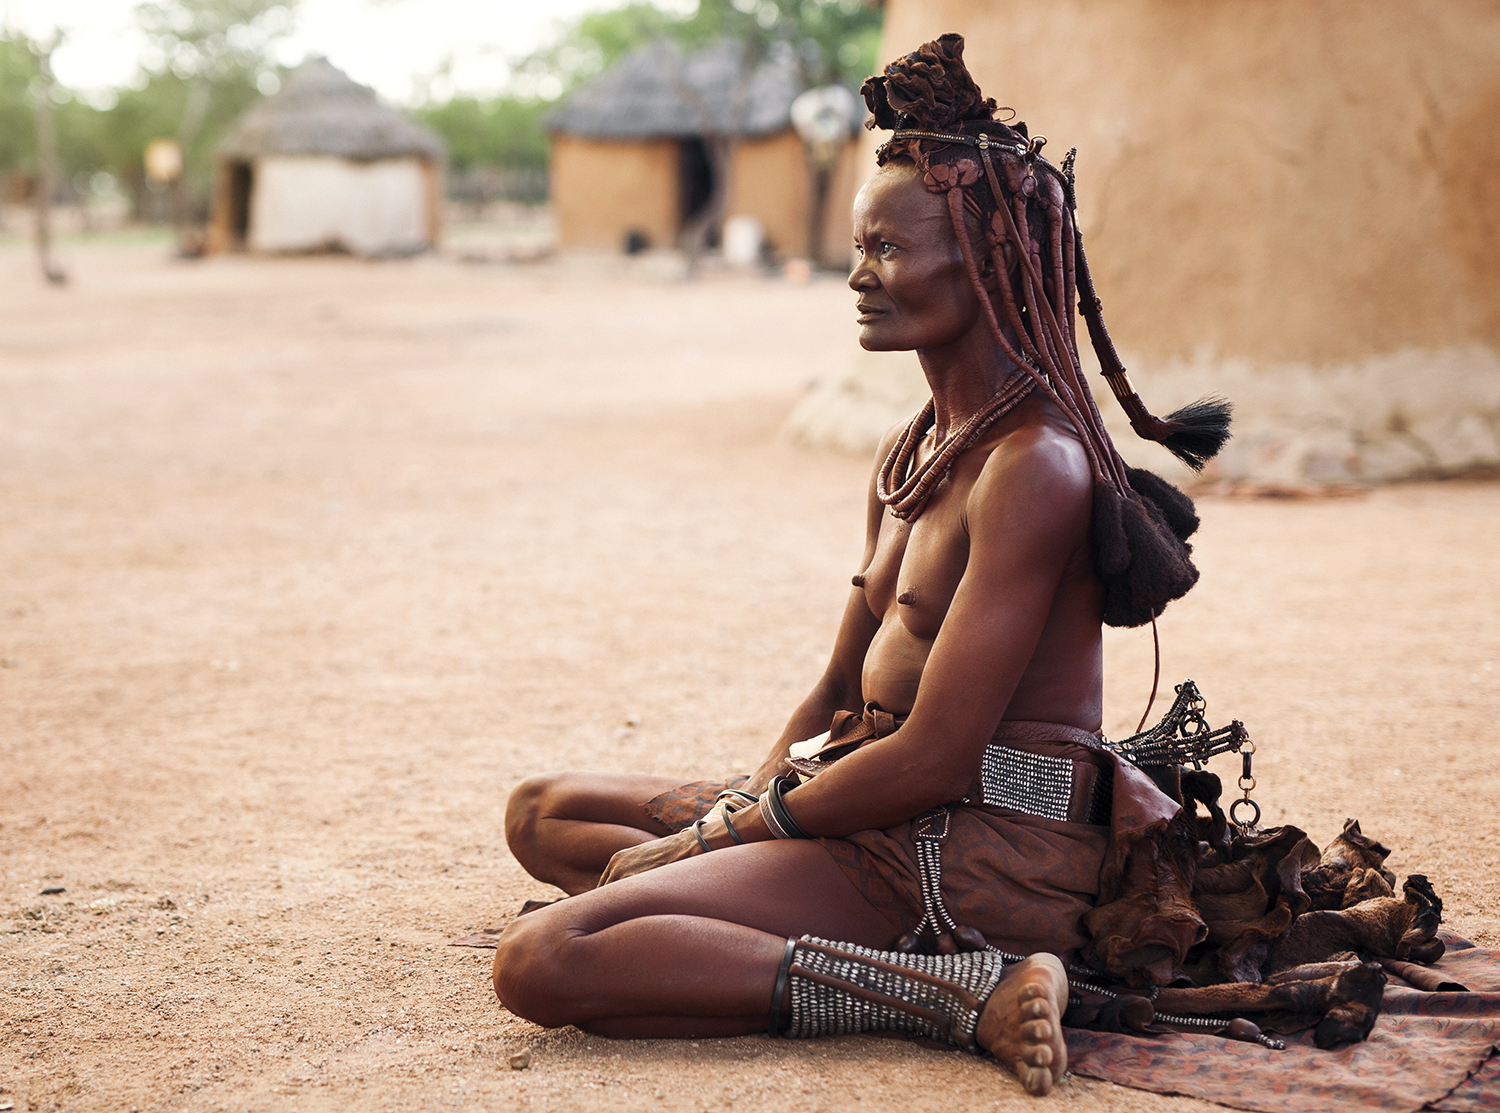 HIMBA natural light 16 Final.png